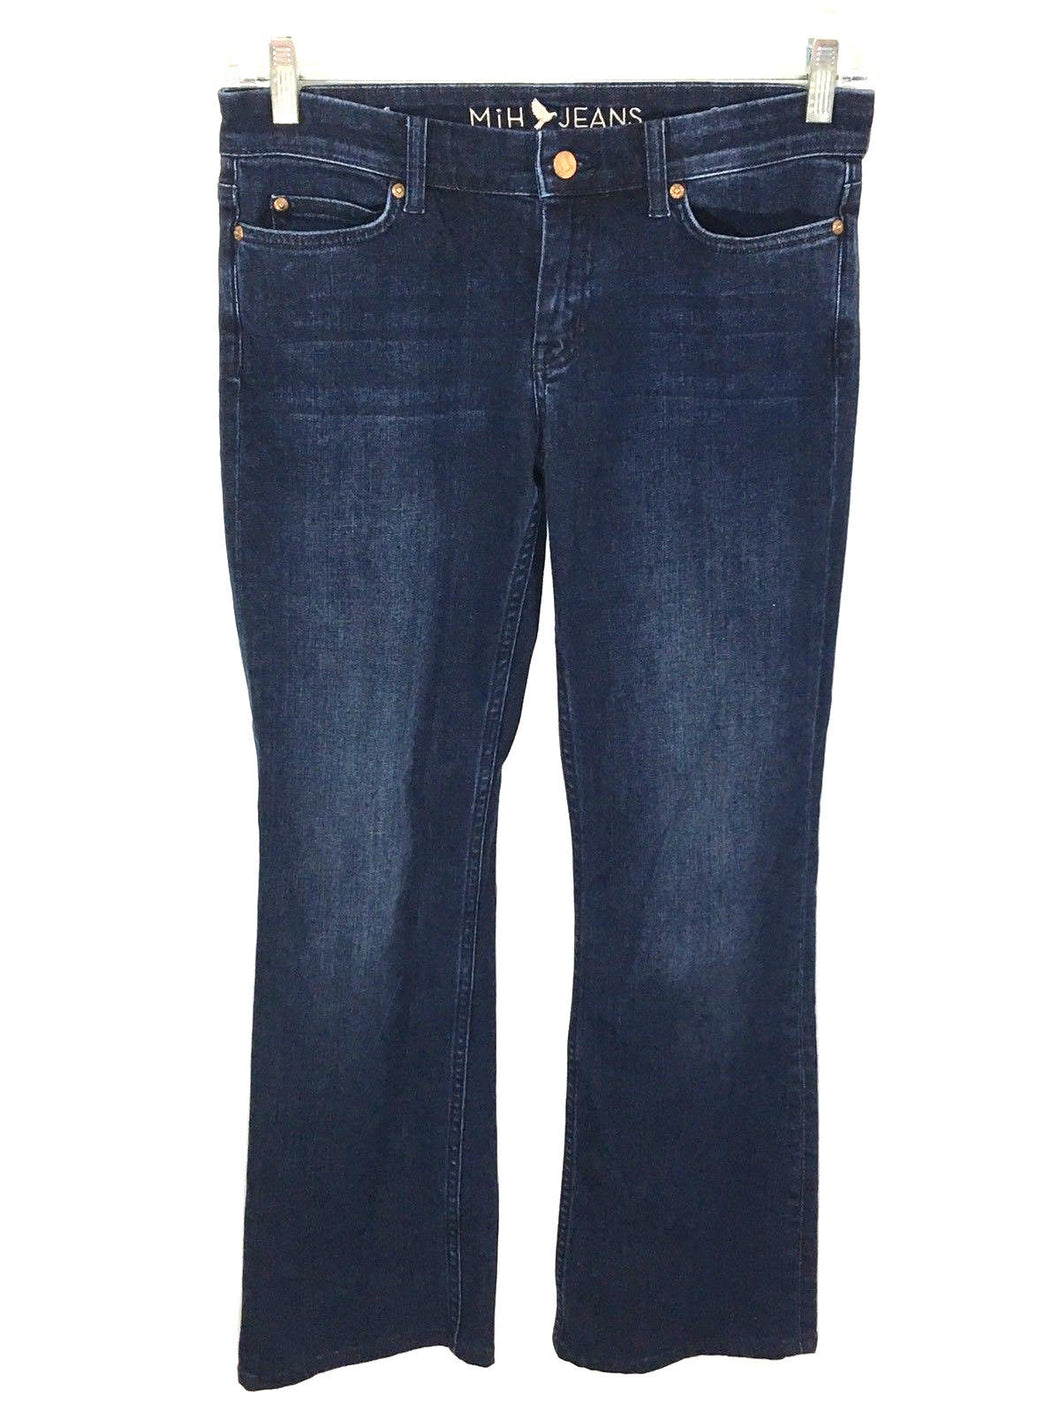 MiH Jeans The London Jean Mid Rise Subtle Bootcut Dark Wash Bond Womens 28 - Preowned - FunkyCrap Boutique